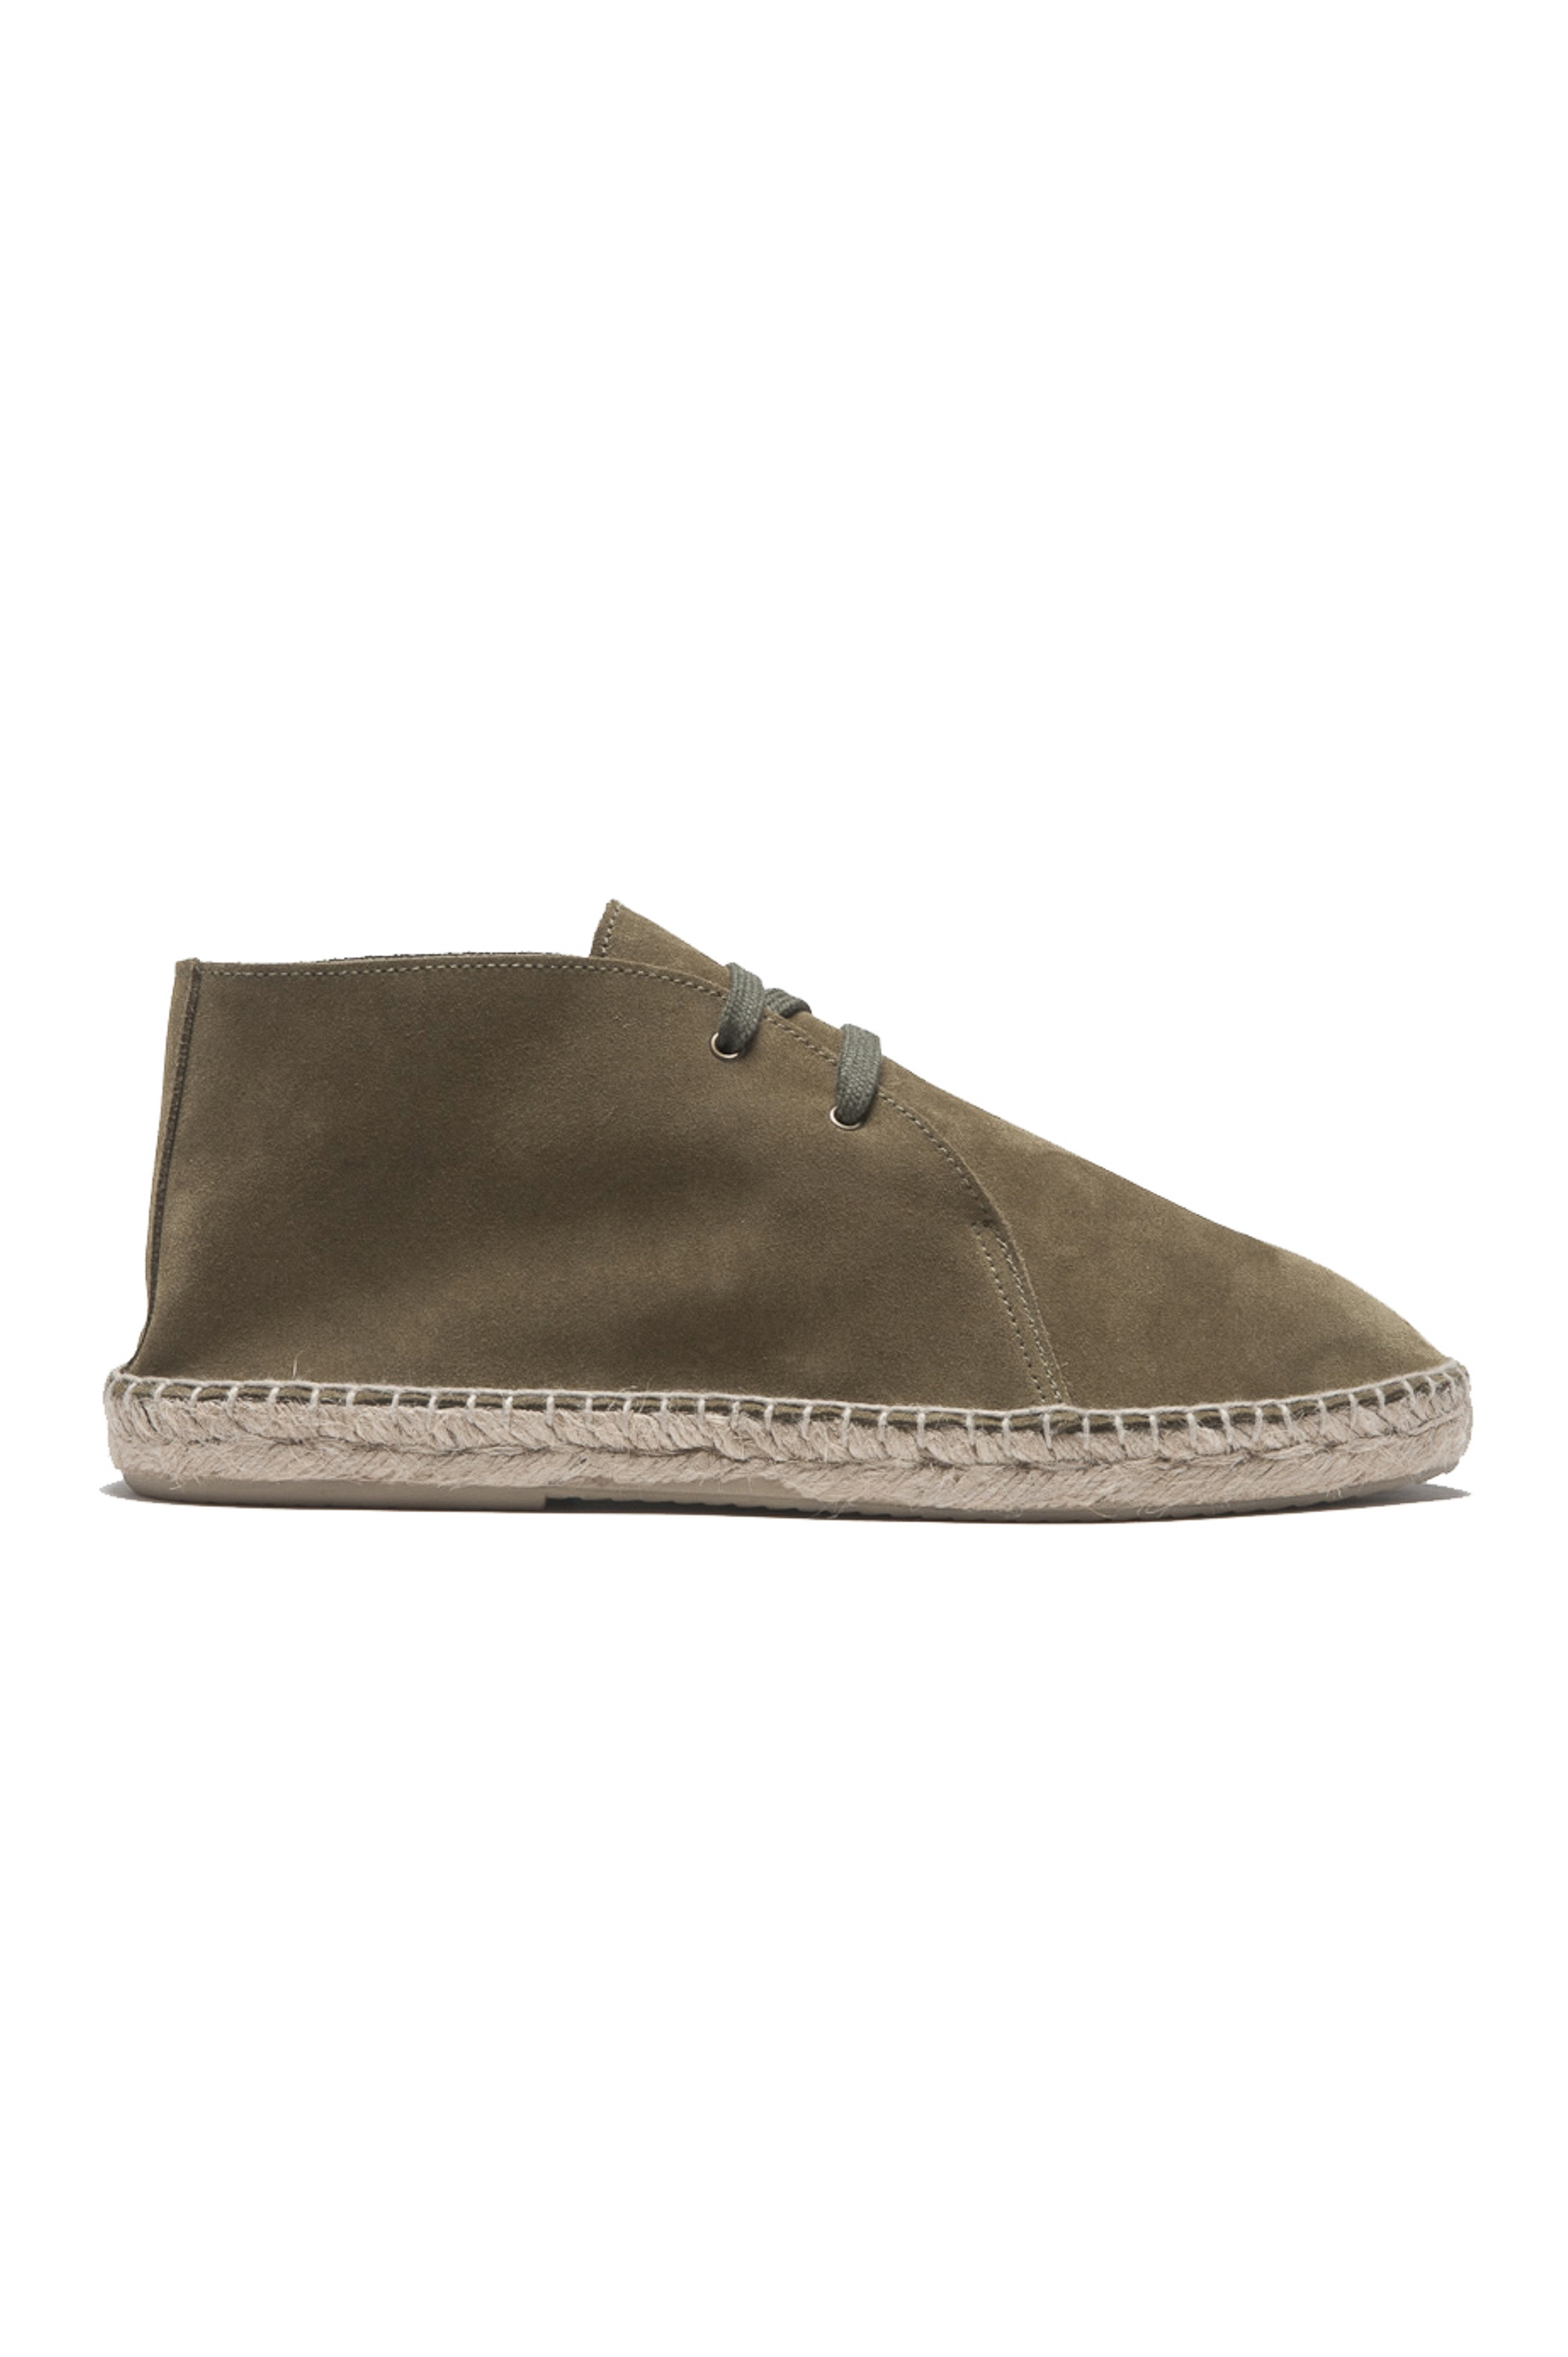 SBU 01706_2020SS Original green suede leather lace up espadrilles with rubber sole 01